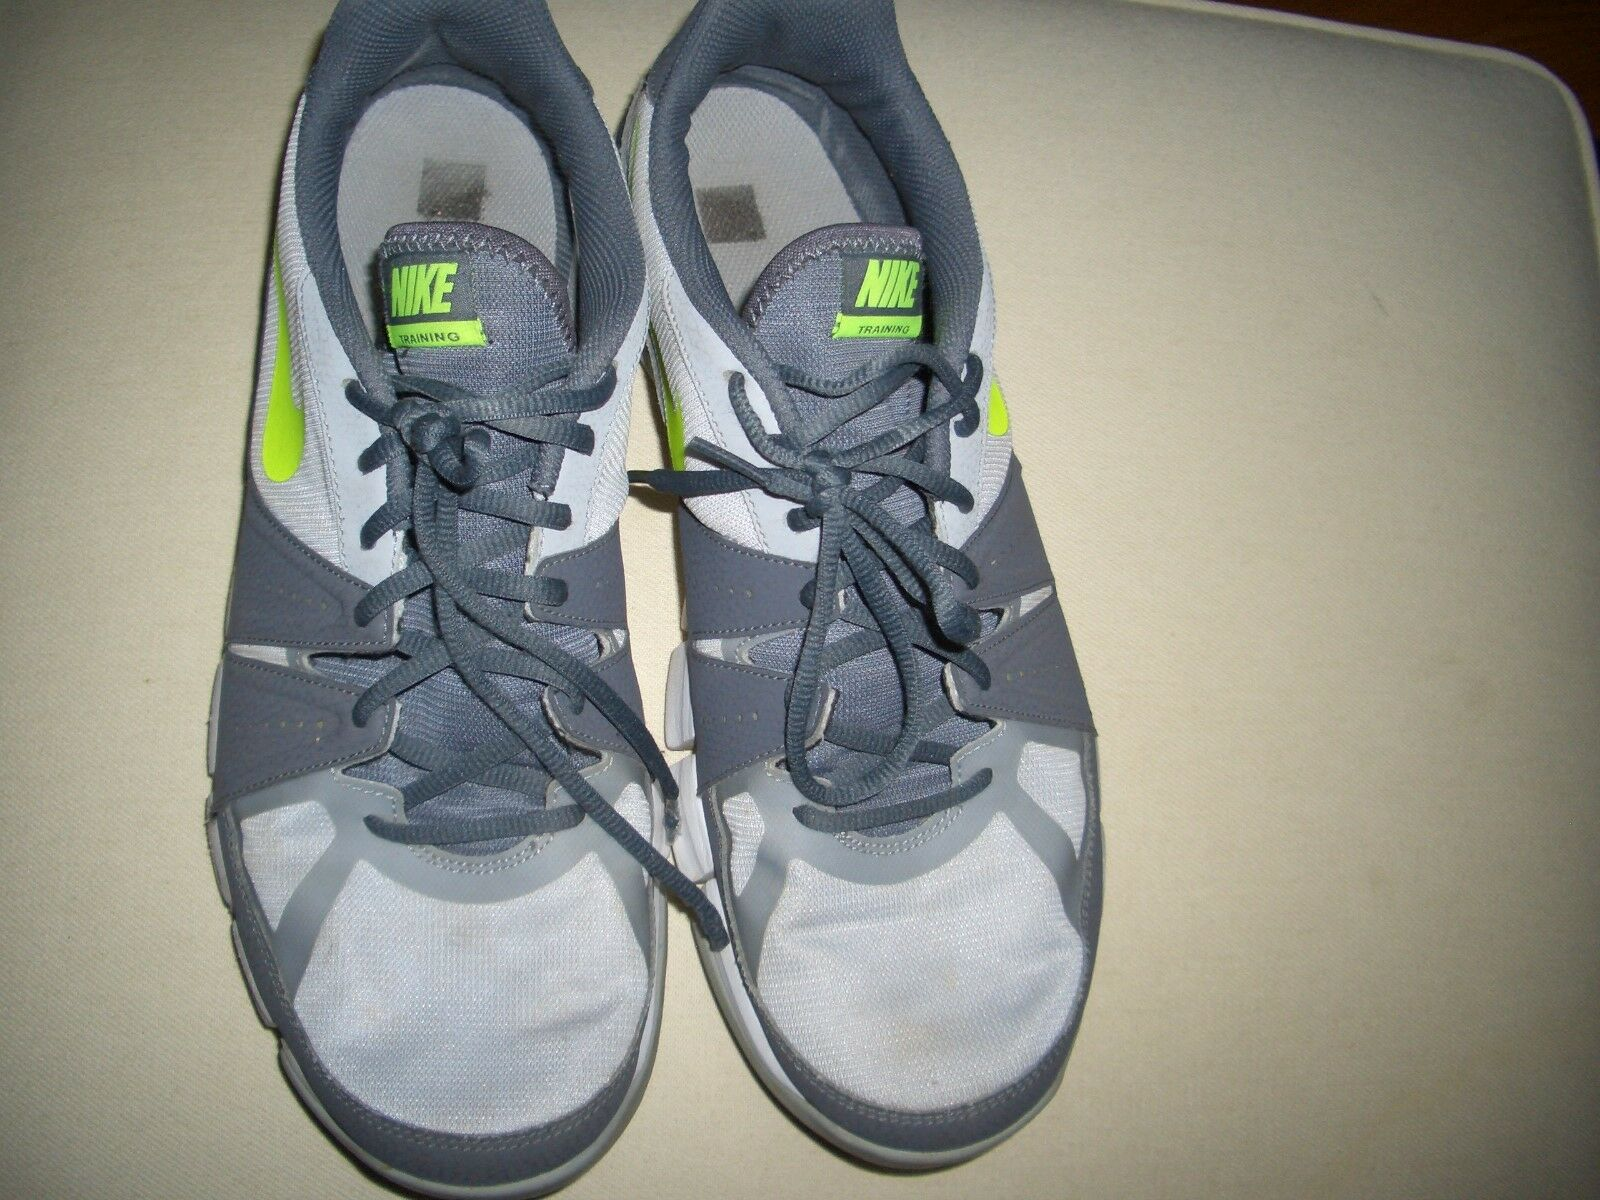 e2d7cfa3ed08 Nike Training 684701-013 Men Gray Lime Green Sneaker SZ SZ SZ 13 052c80